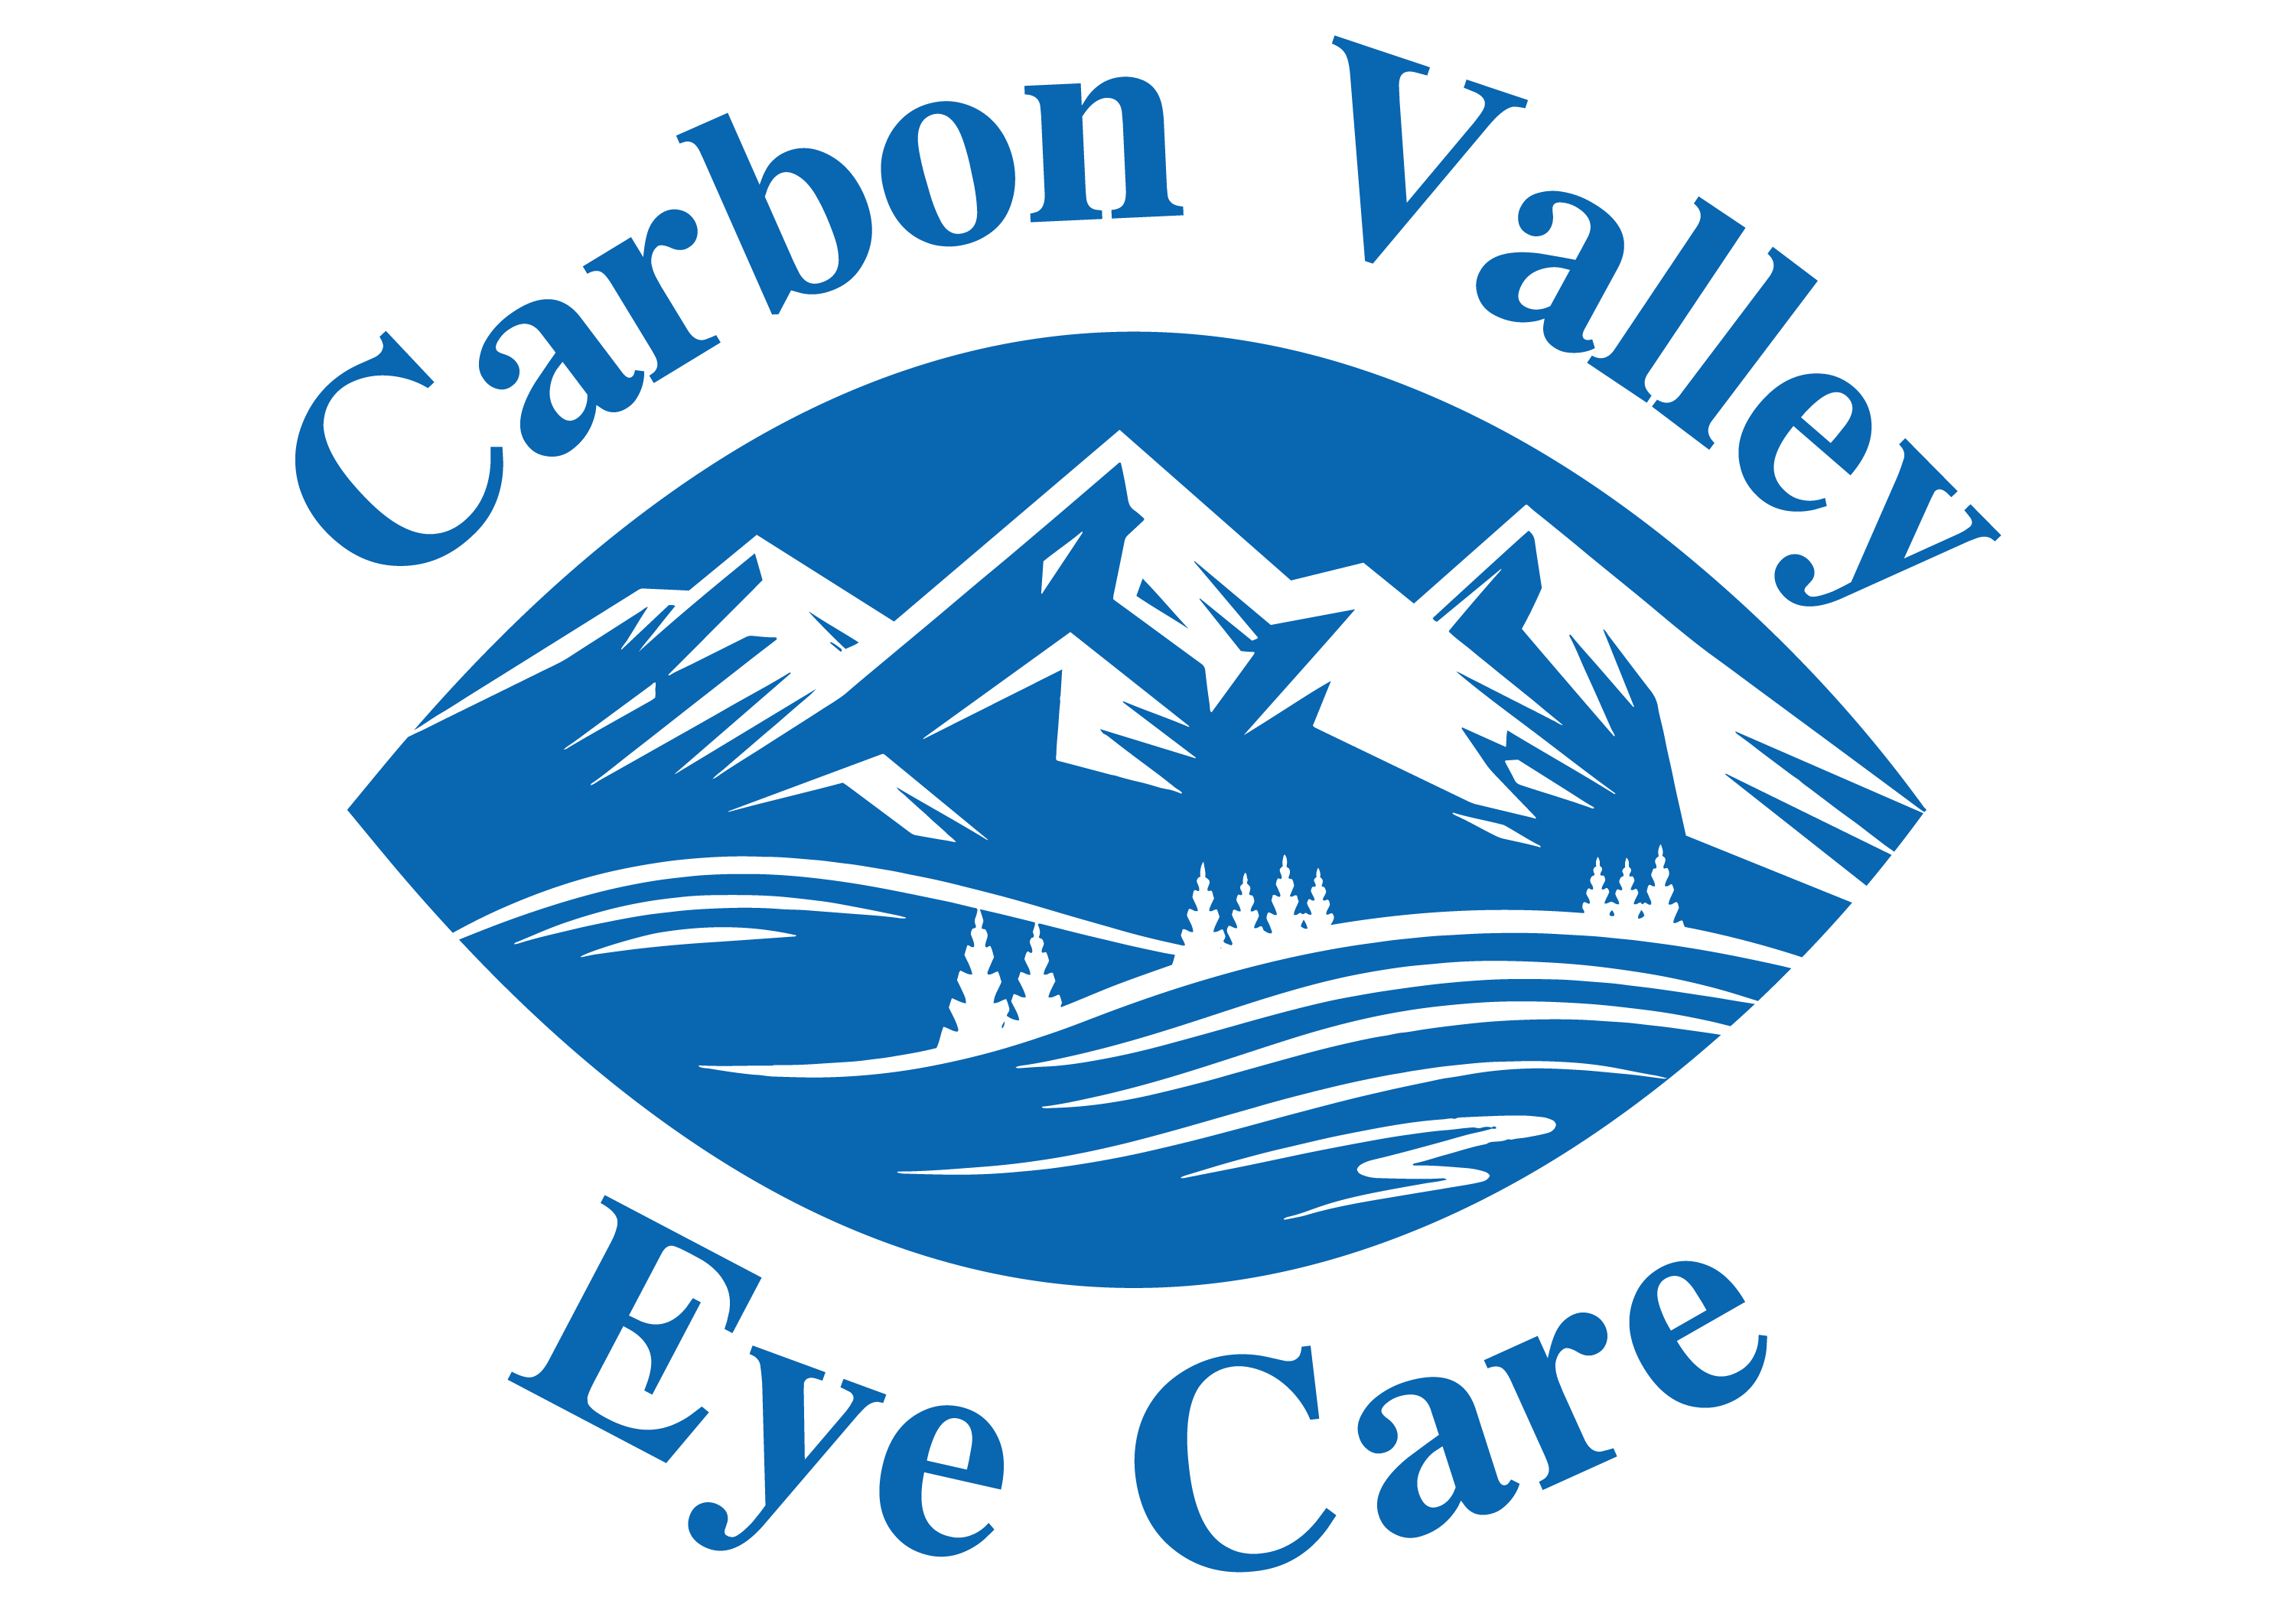 carbon valley eye care